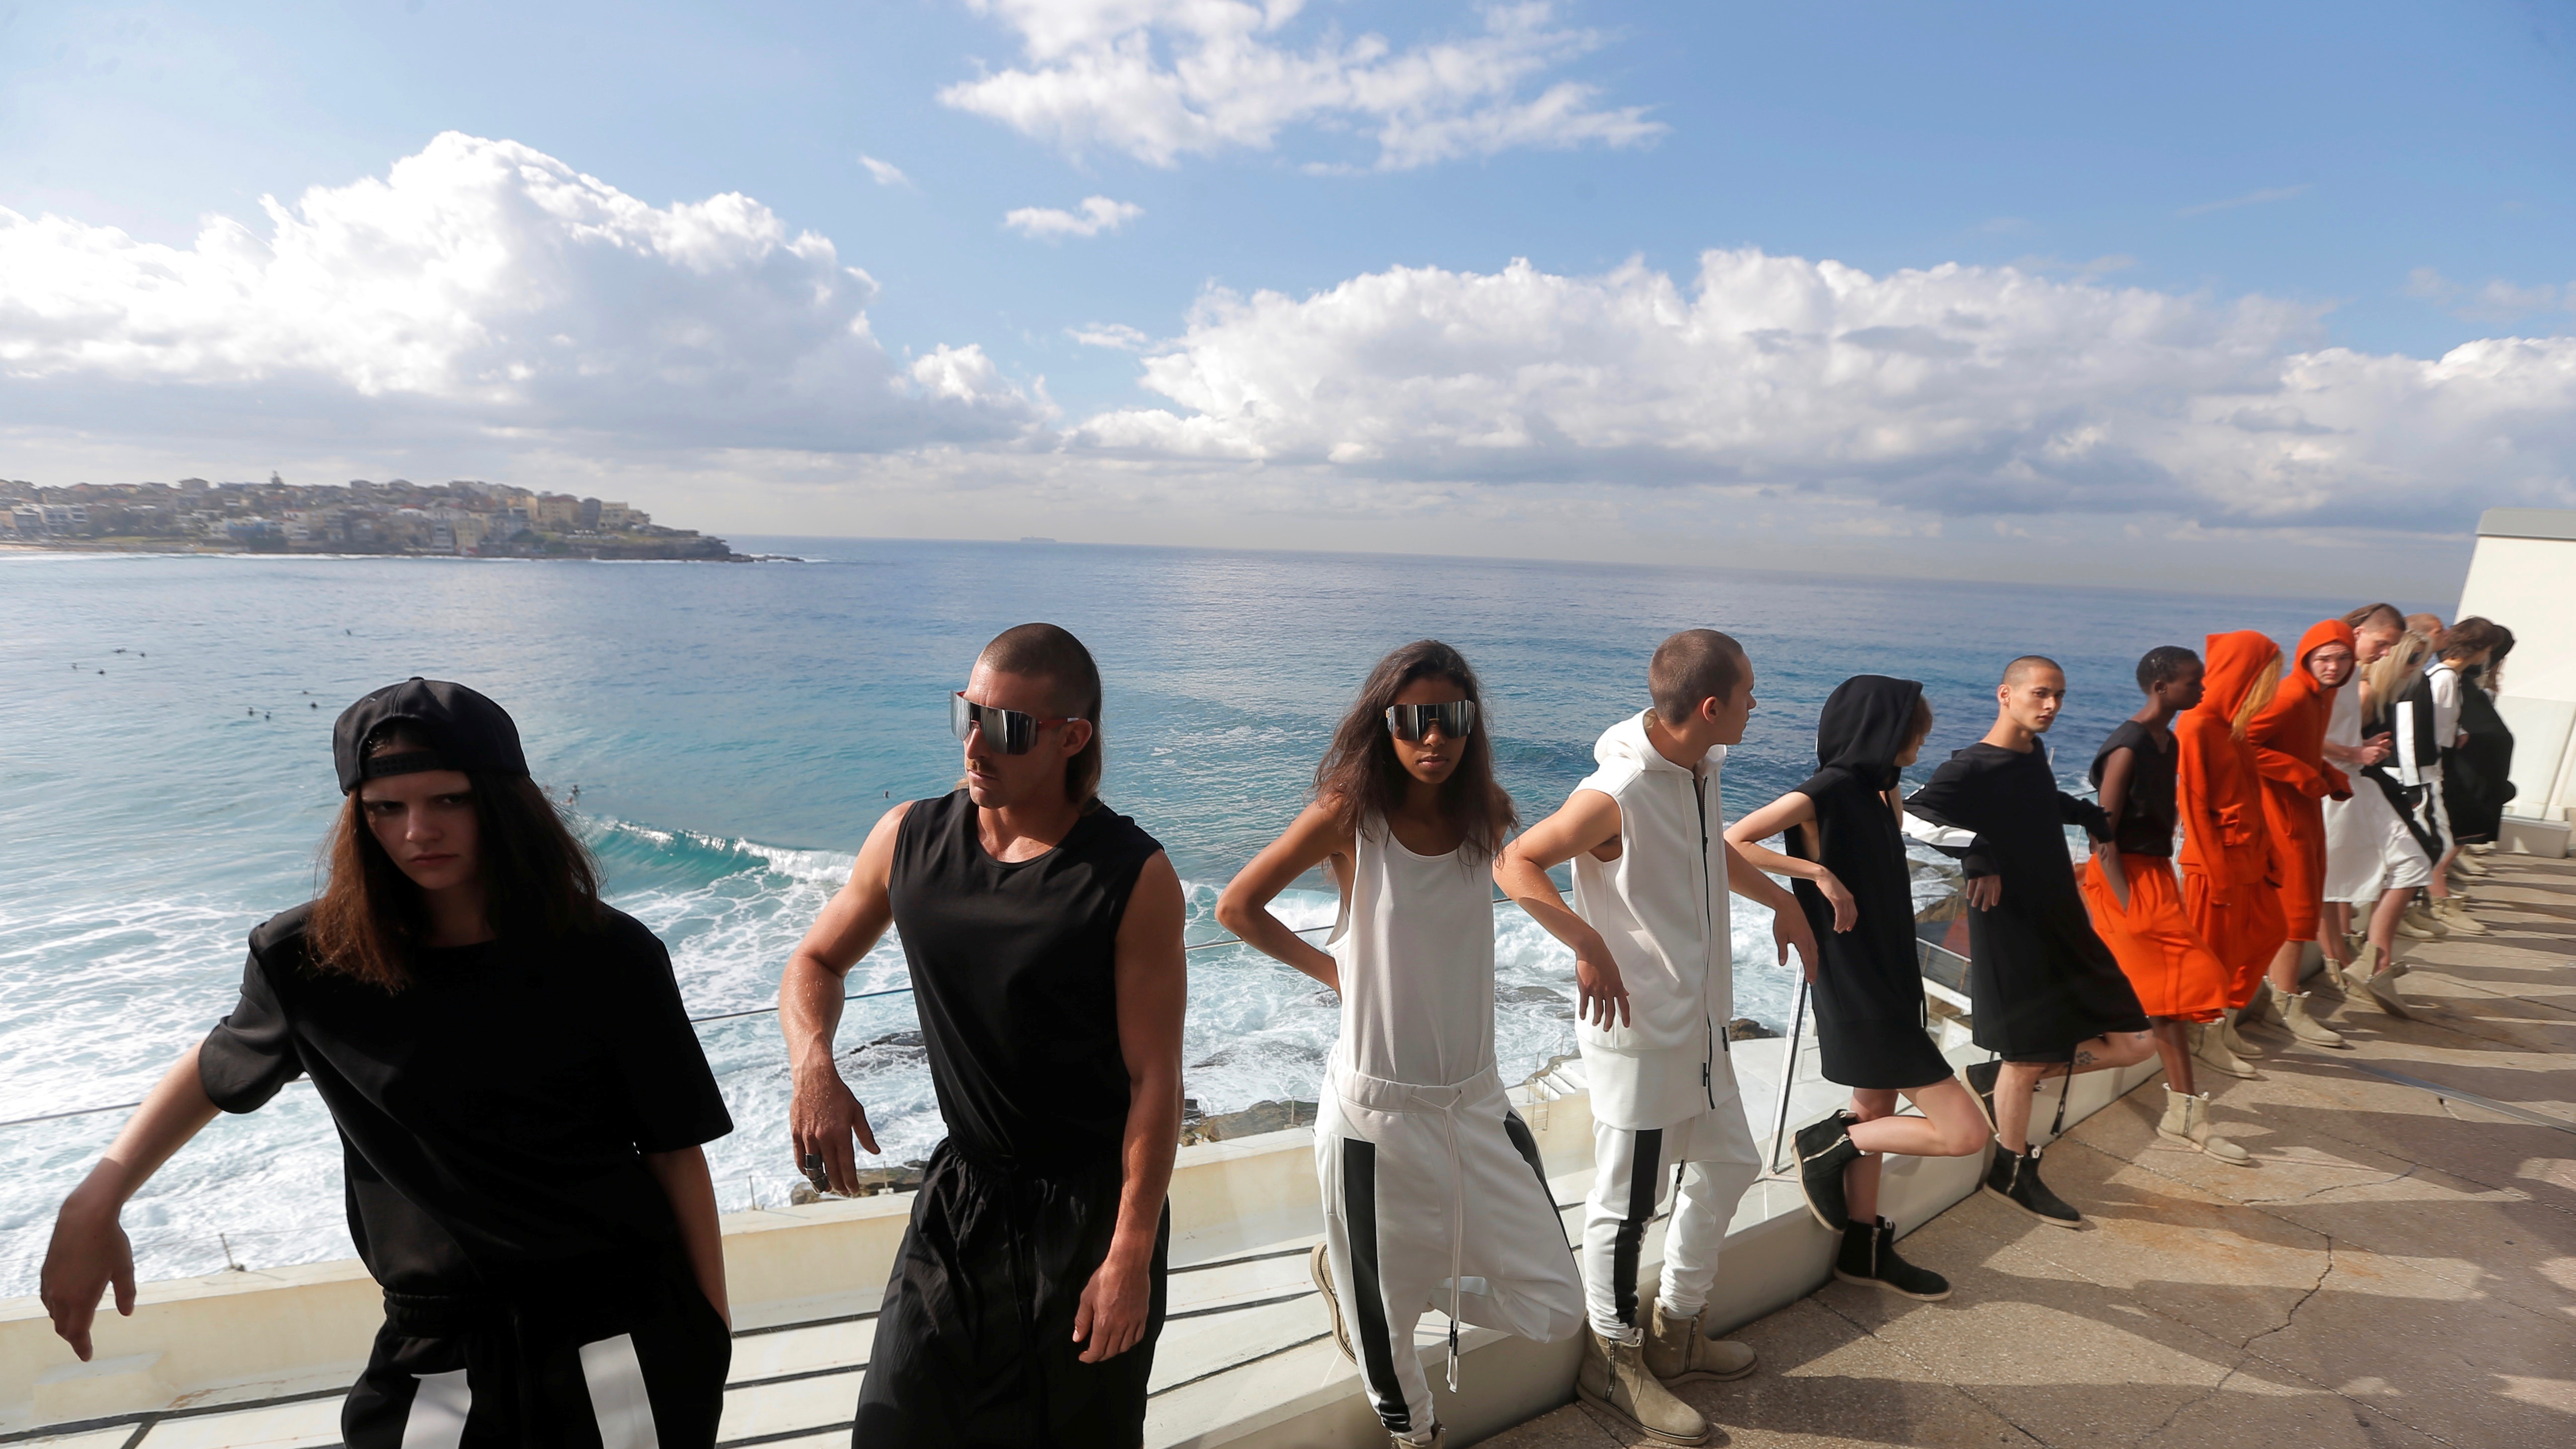 Models for the Ten Pieces on the Balcony of Bondi Icebergs, AU.